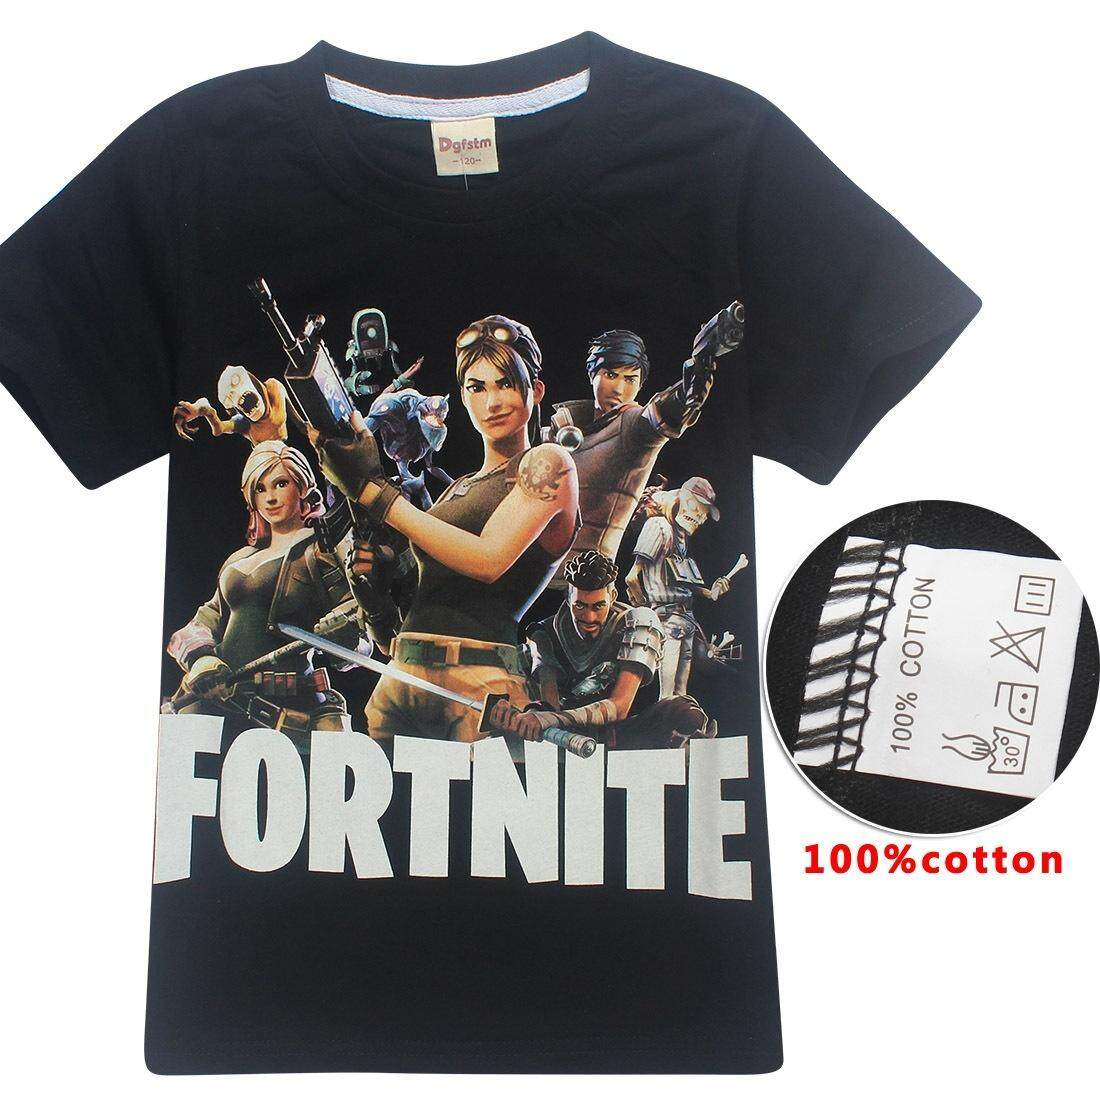 Hequ 100% Cotton 6-14 Years Old Summer Fortnite Printed T-Shirts Boys And Girls Tracksuits Kids Tops Casual Tees By Hequ Trading.